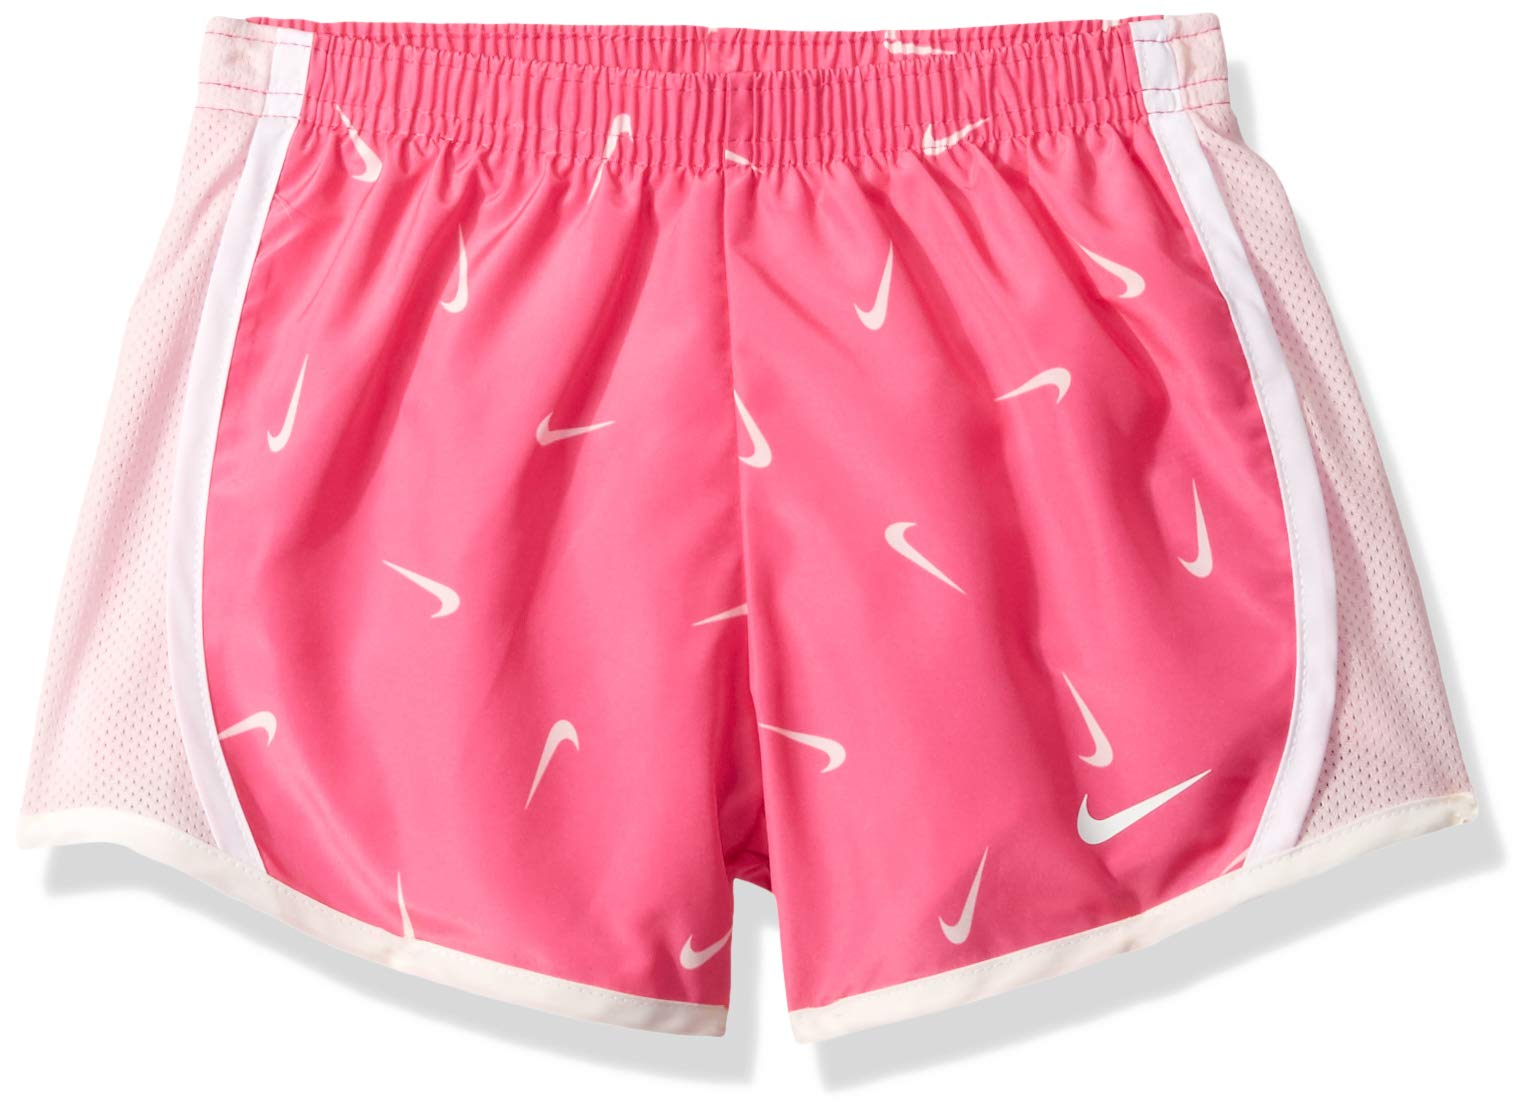 NIKE Children's Apparel Girls' Little Dri-FIT Tempo Shorts, Fuchsia/Pink/White, 6 by NIKE Children's Apparel